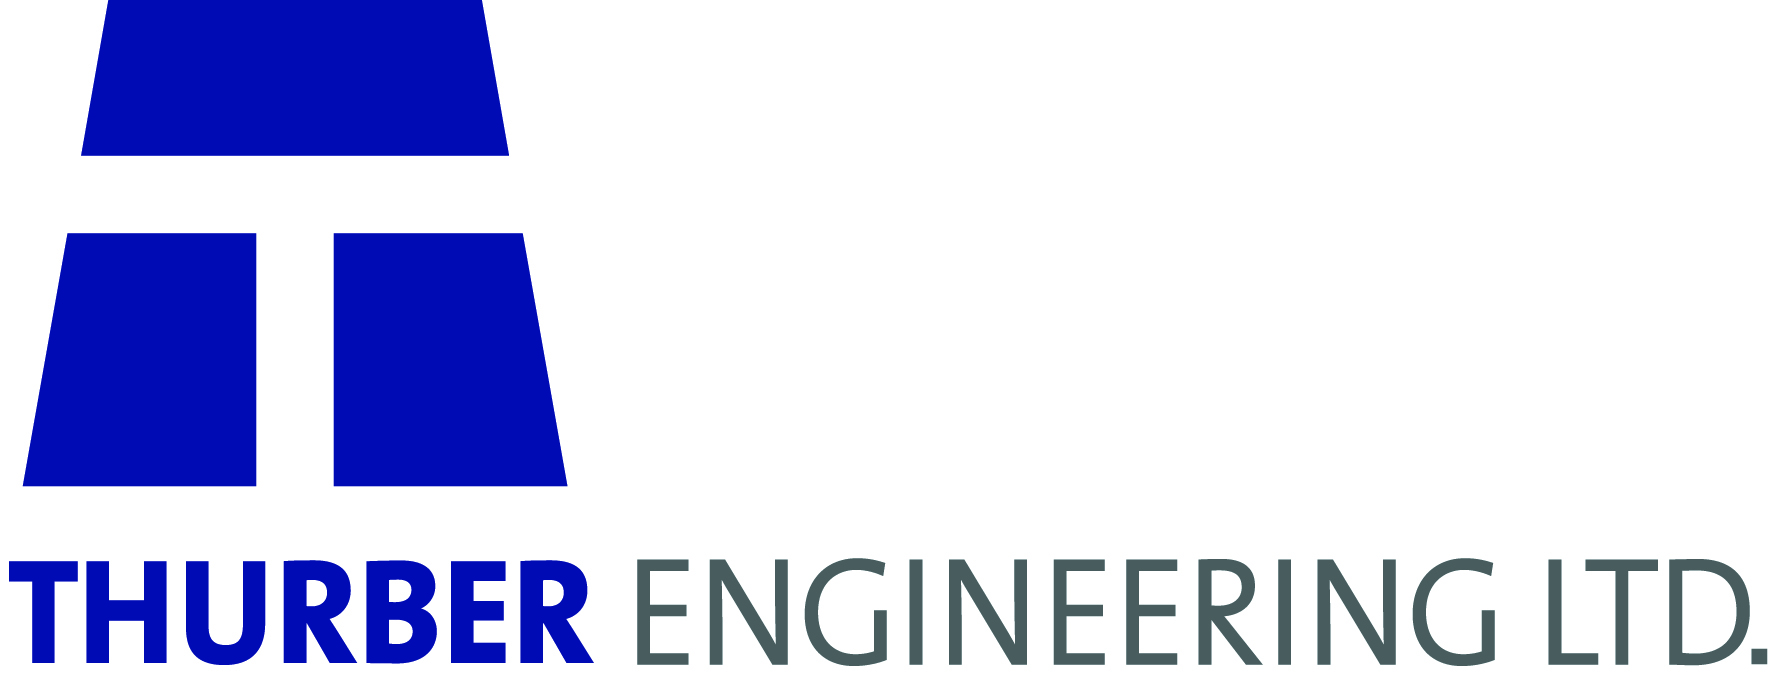 Half Hole Sponsor - Thurber Engineering - Logo